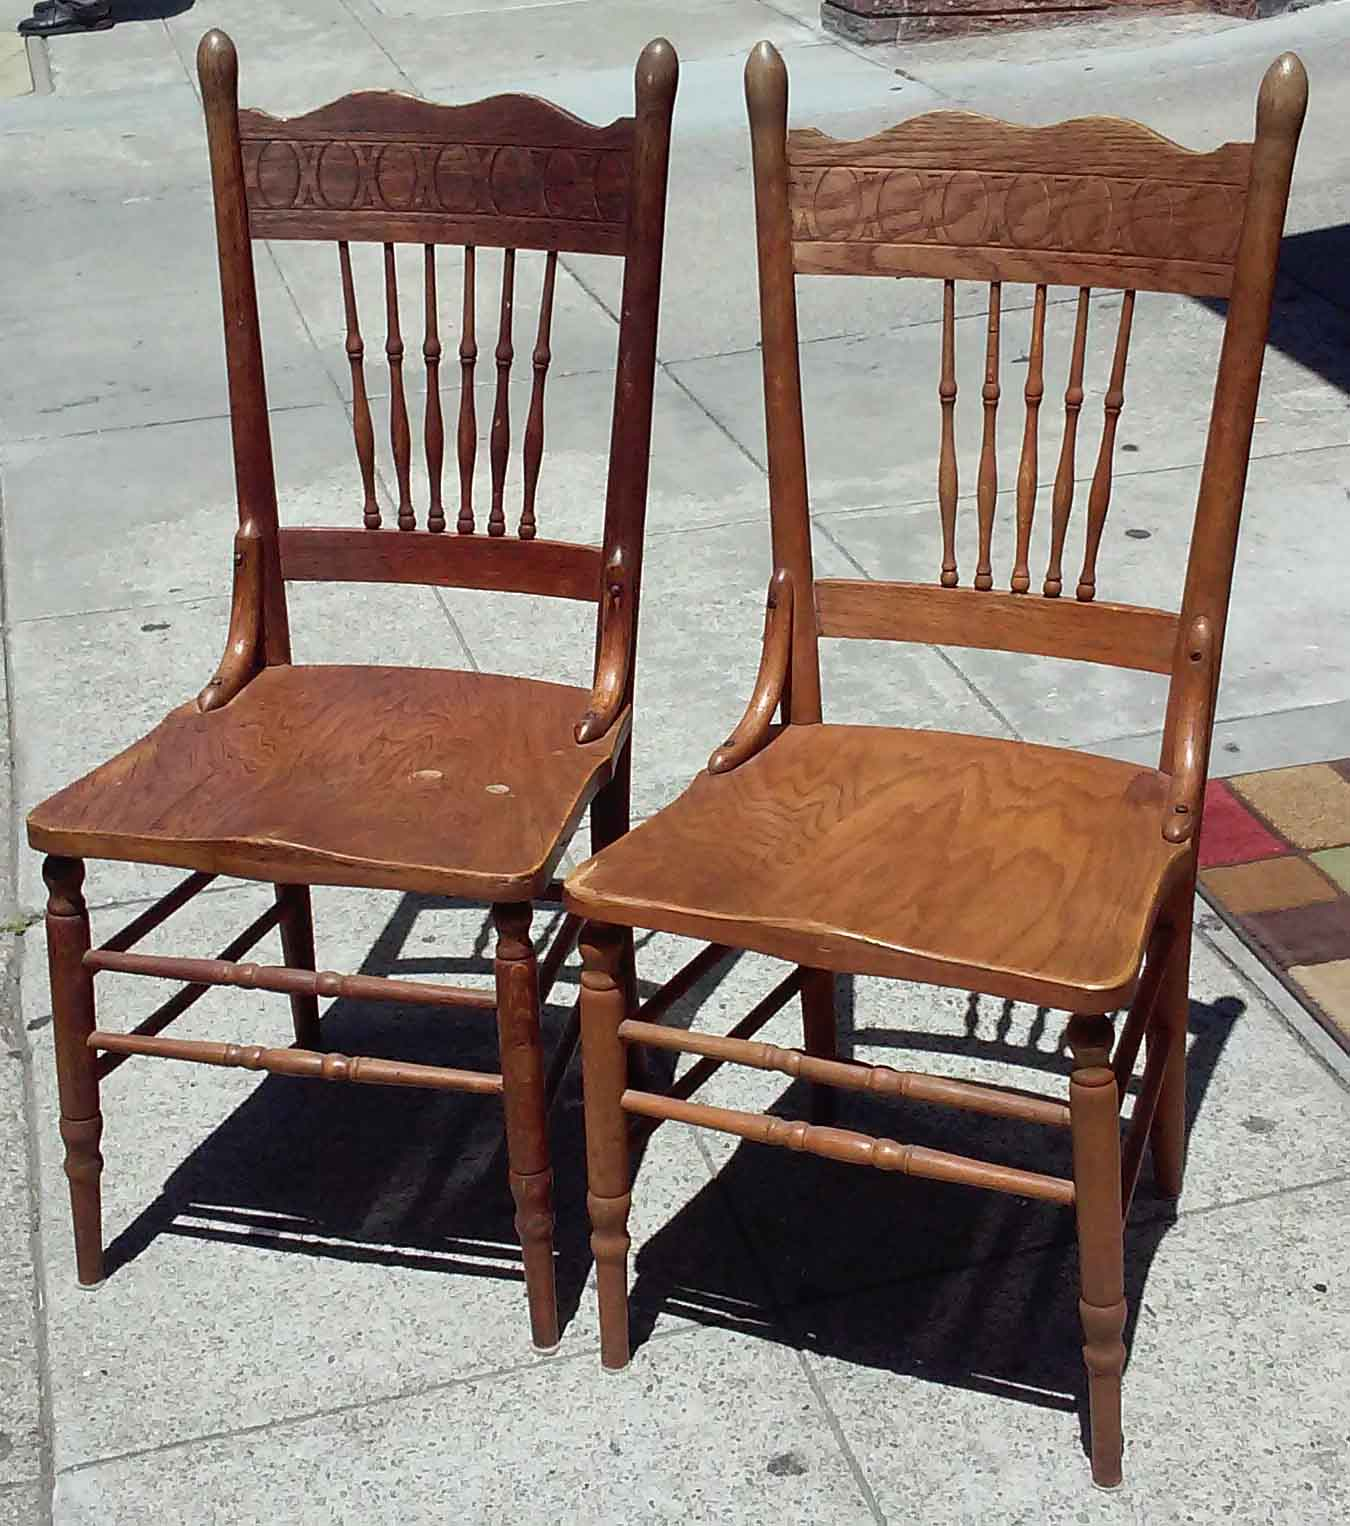 Spindle Dining Chairs Uhuru Furniture And Collectibles Sold Oak Spindle Dining